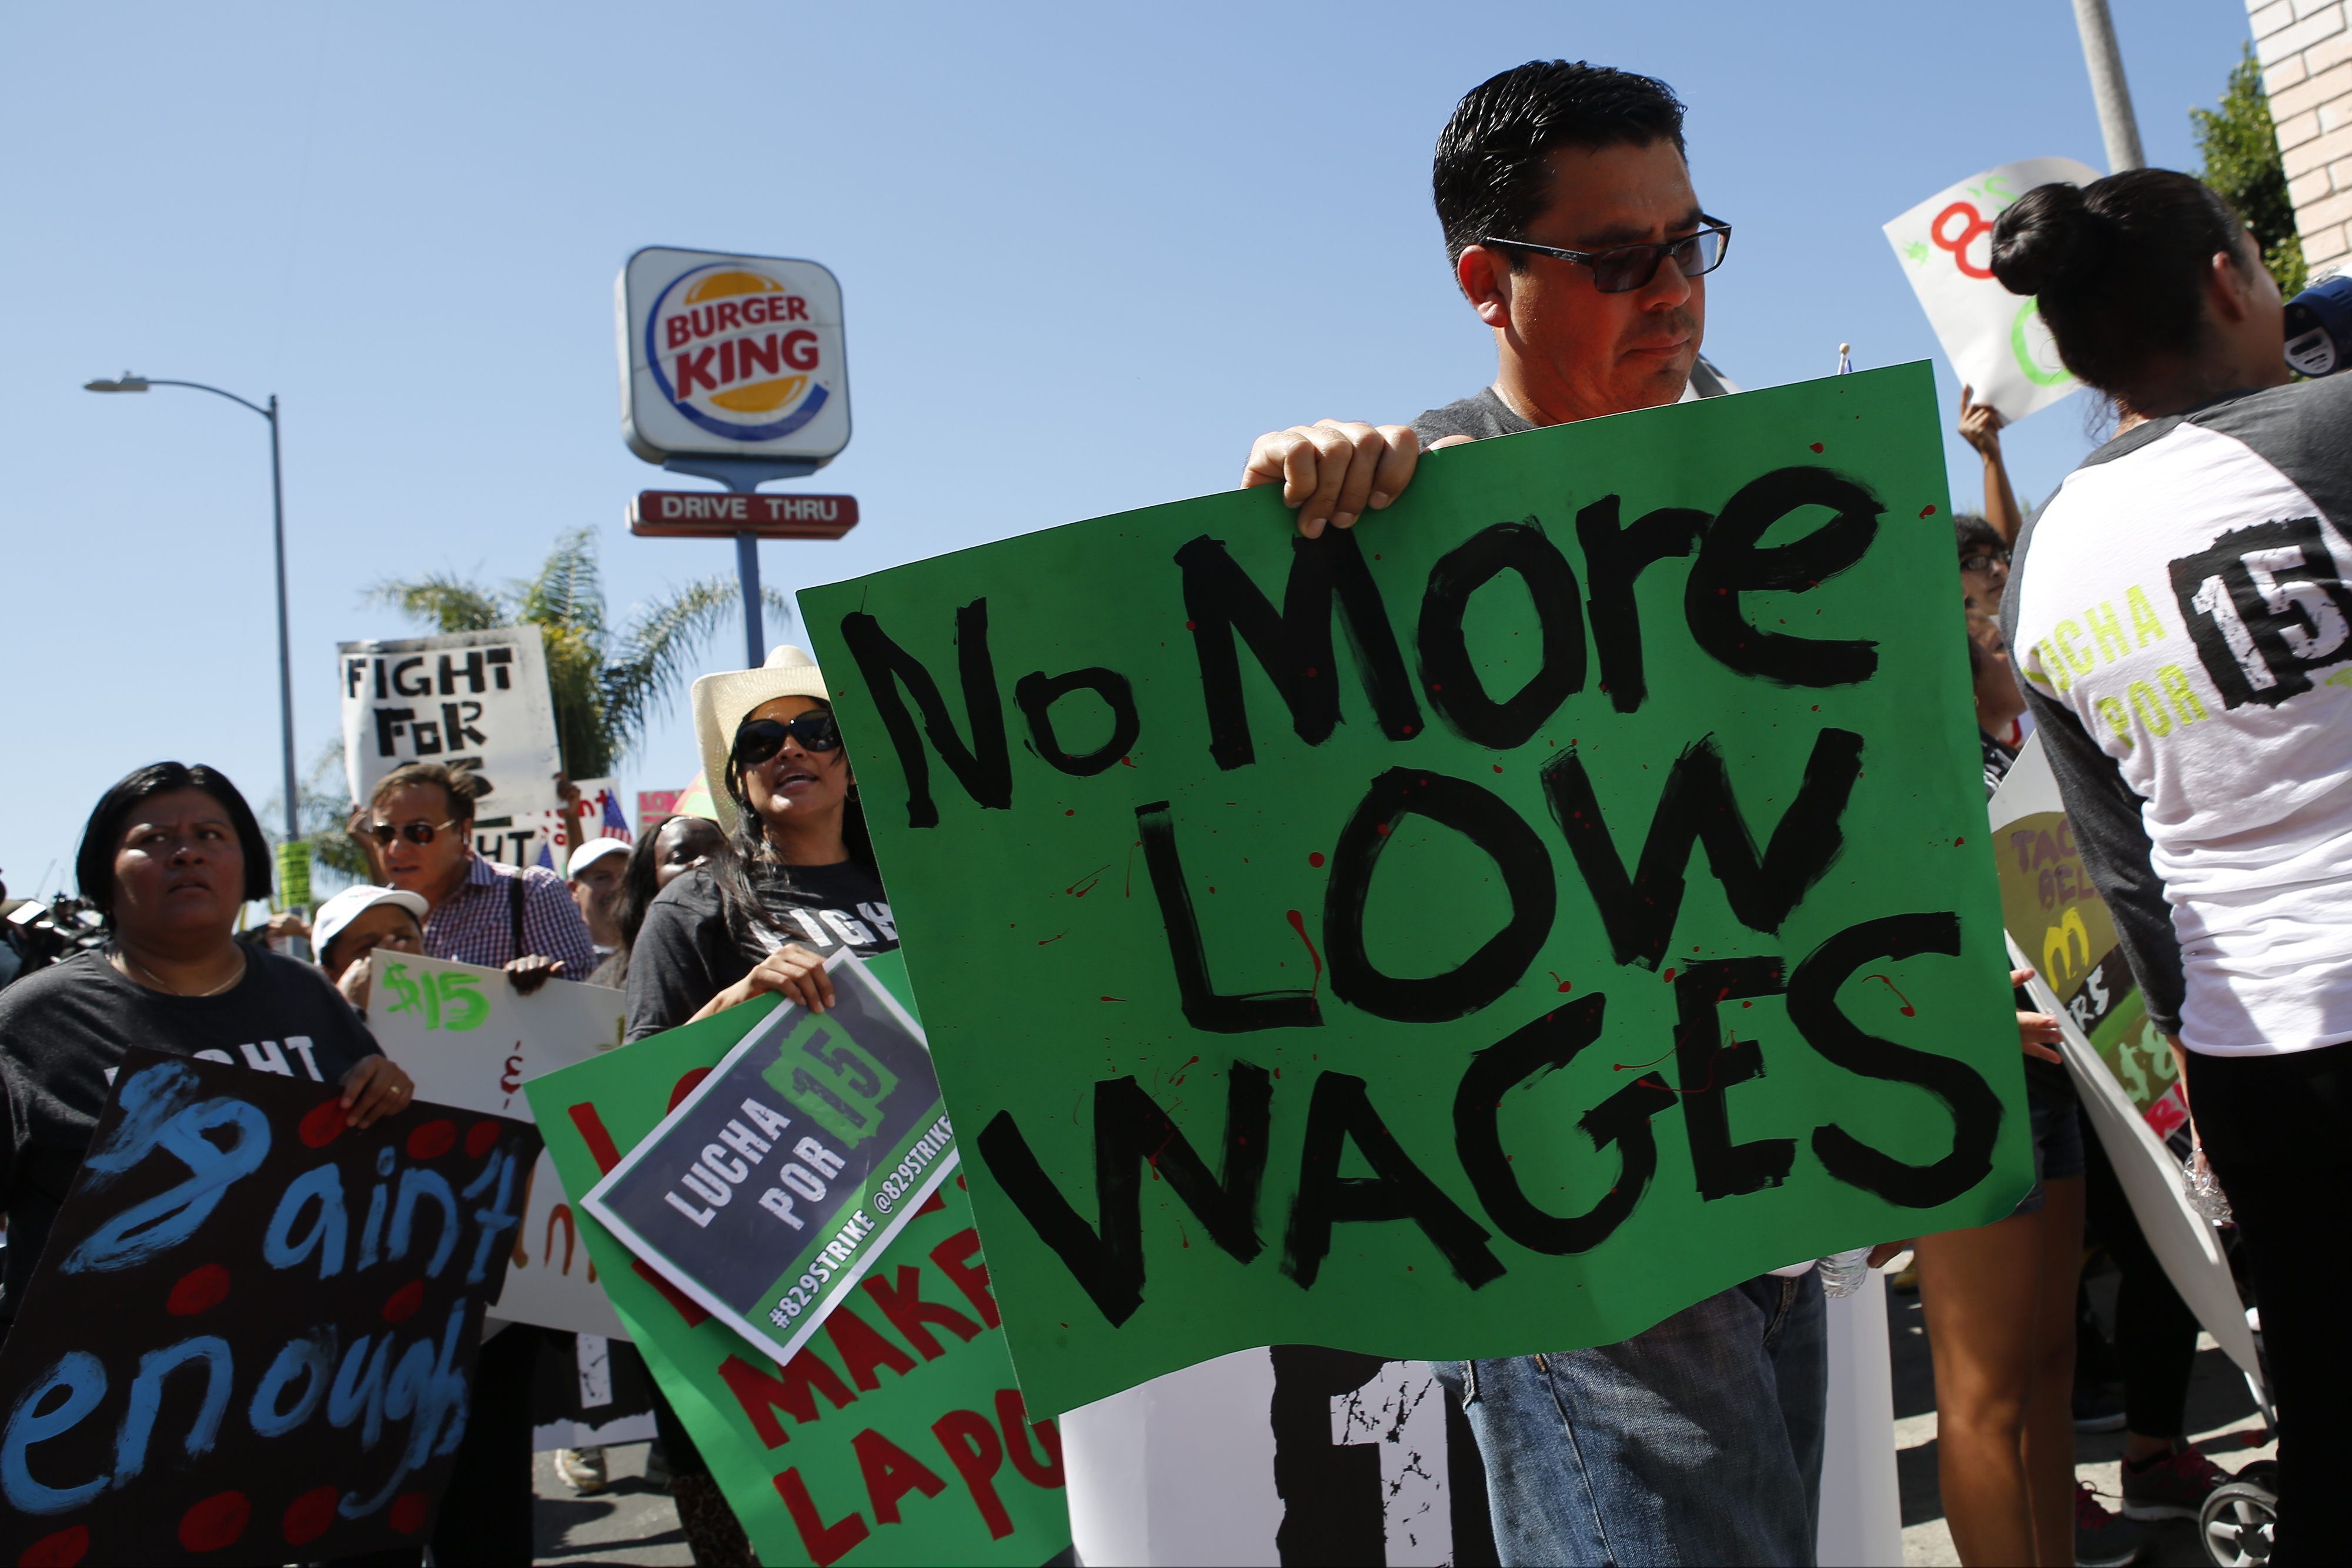 Fast-food workers and supporters organized by the Service Employees International Union (SEIU) protest outside of a Burger King Worldwide Inc. restaurant in Los Angeles, California, U.S., on Thursday, Aug. 29, 2013.